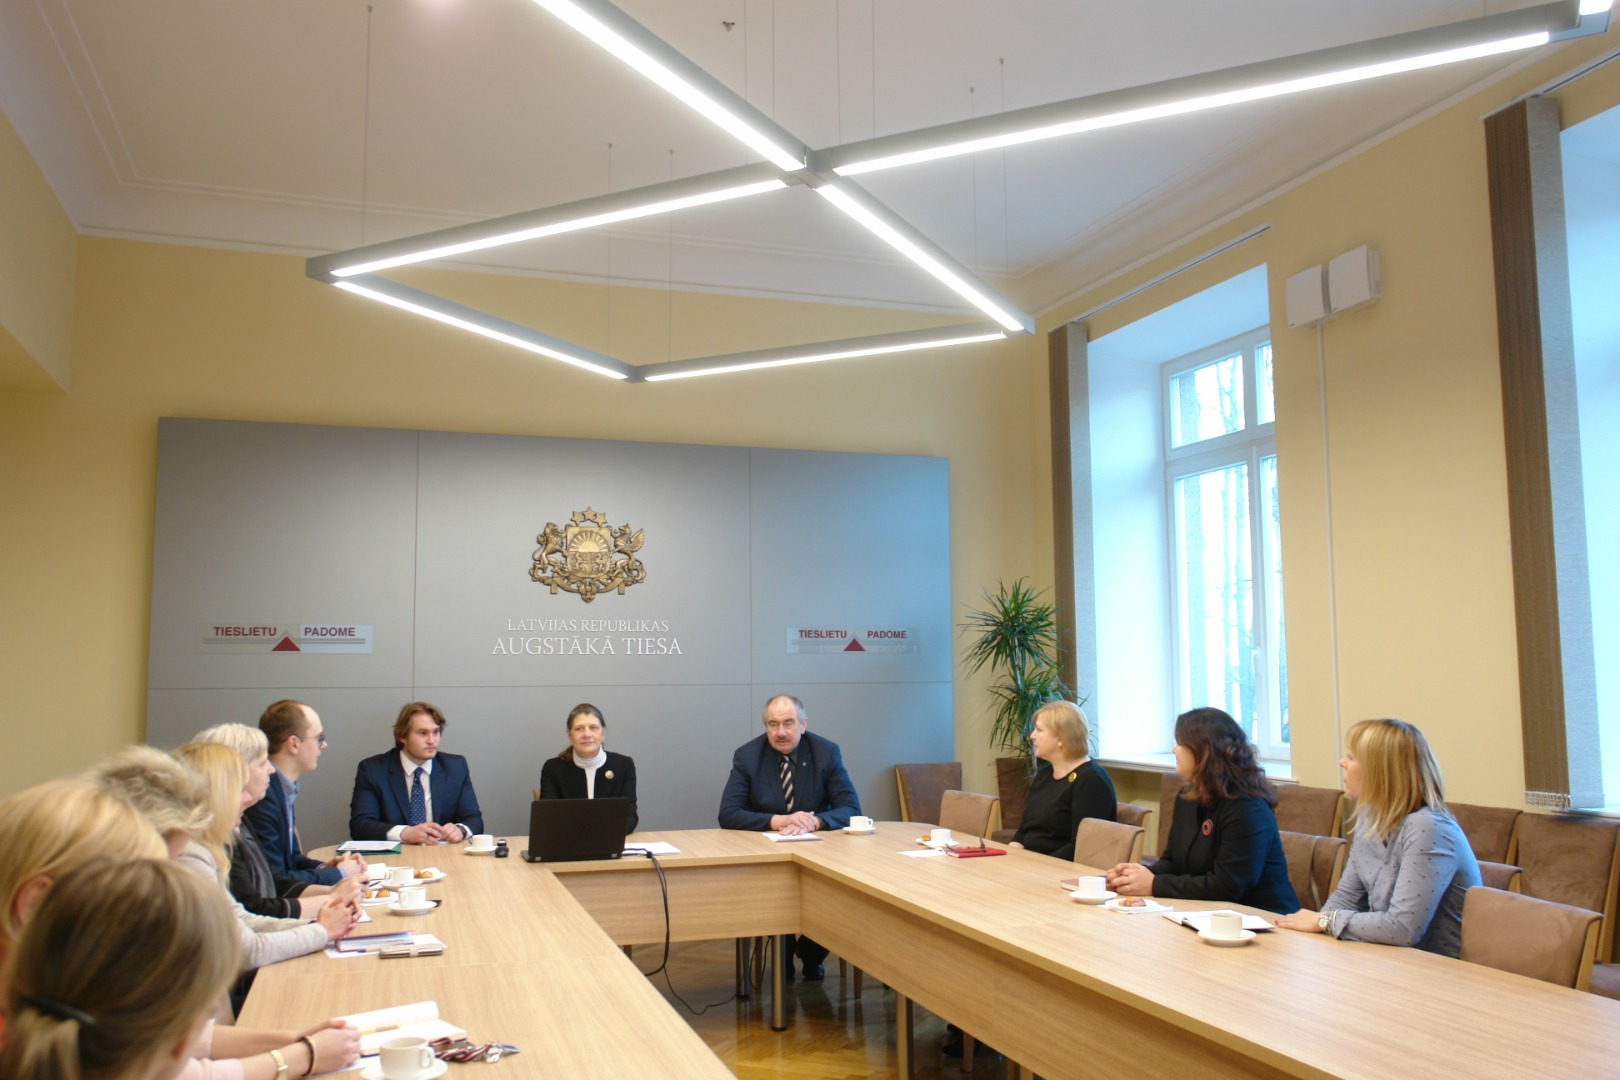 27.02.2019. When visiting the Supreme Court, Ilze Ruse, the Latvian Ambassador to the Netherlands, called on the Supreme Court to use the opportunities provided to Latvia by international institutions in The Hague – the UN International Court of Justice, the International Criminal Court, the Permanent Court of Arbitration, the Hague Conference on Private International Law and the Kosovo Specialist Chambers.